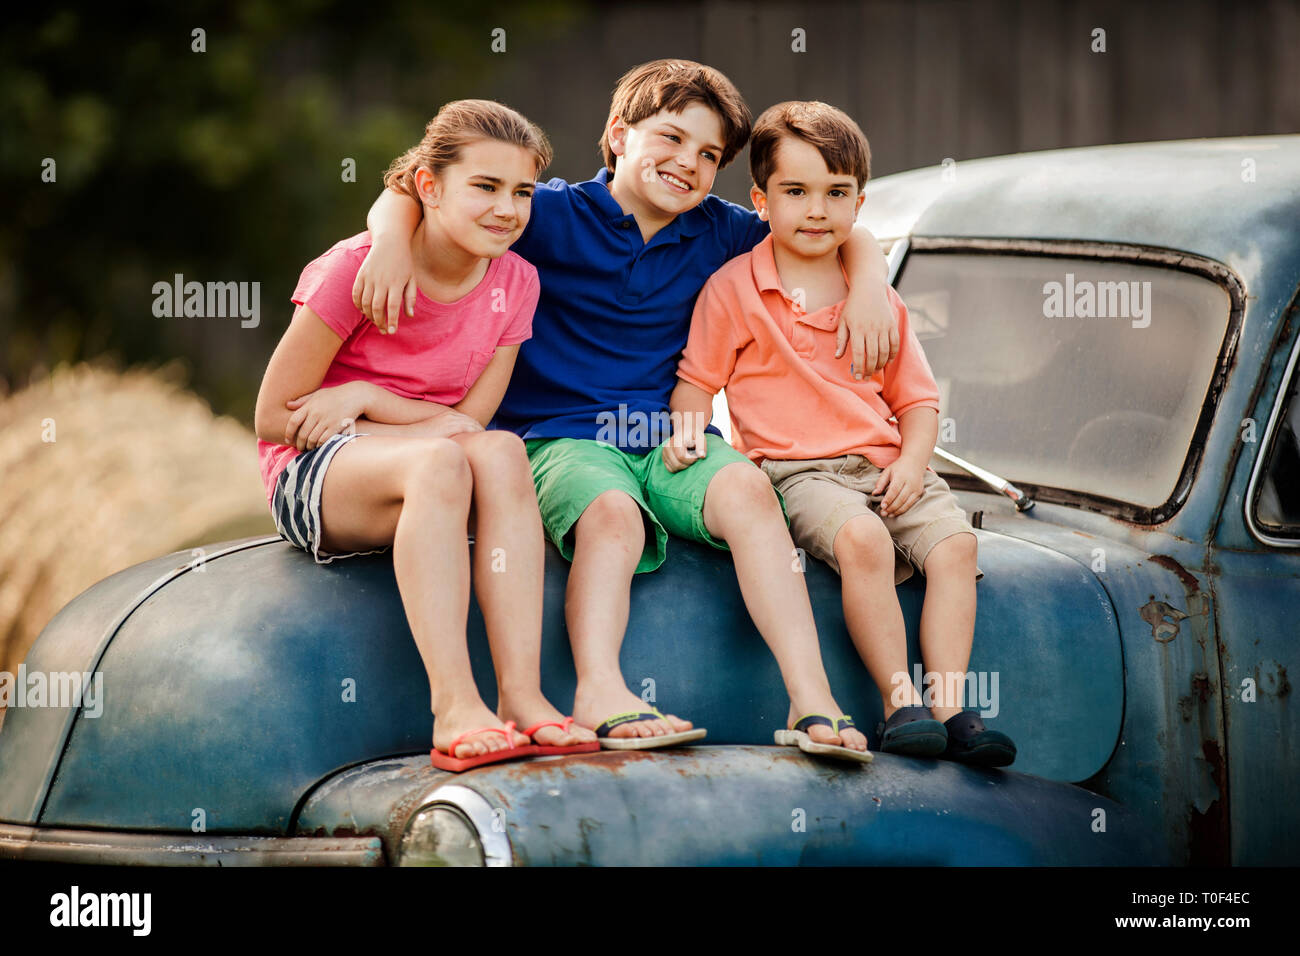 Portrait of three young siblings sitting together on an old car. - Stock Image